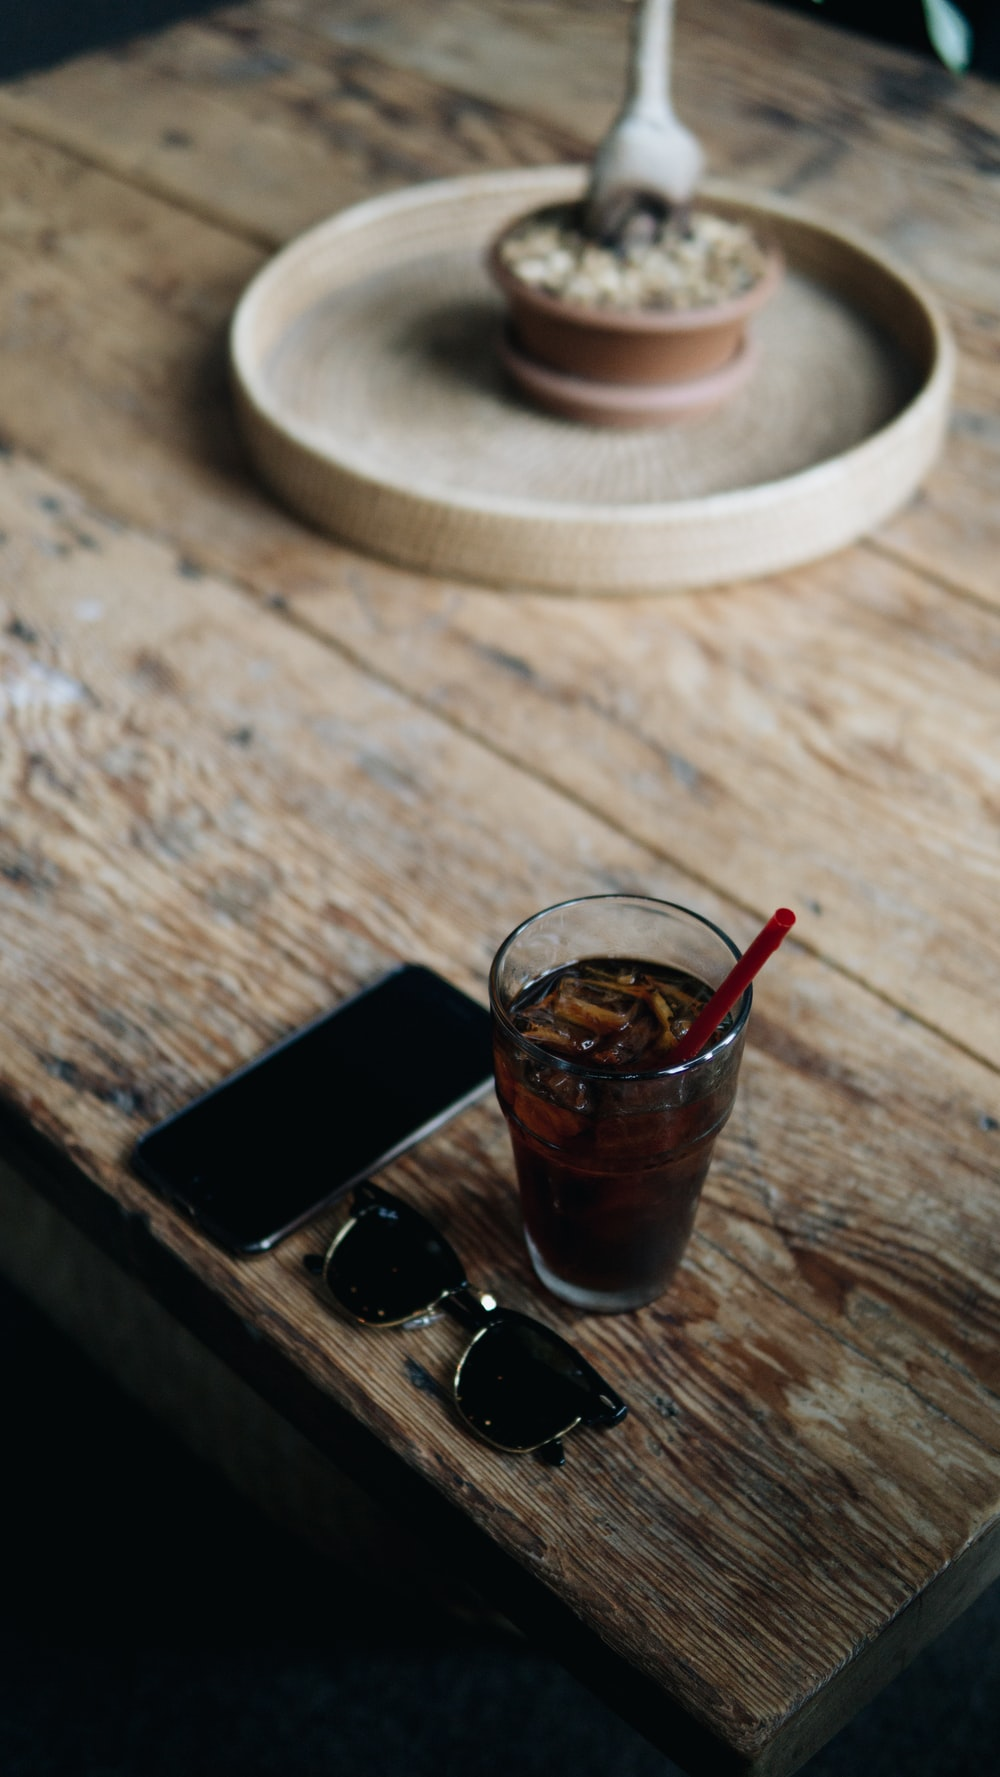 clear drinking glass beside black smartphone on brown wooden table